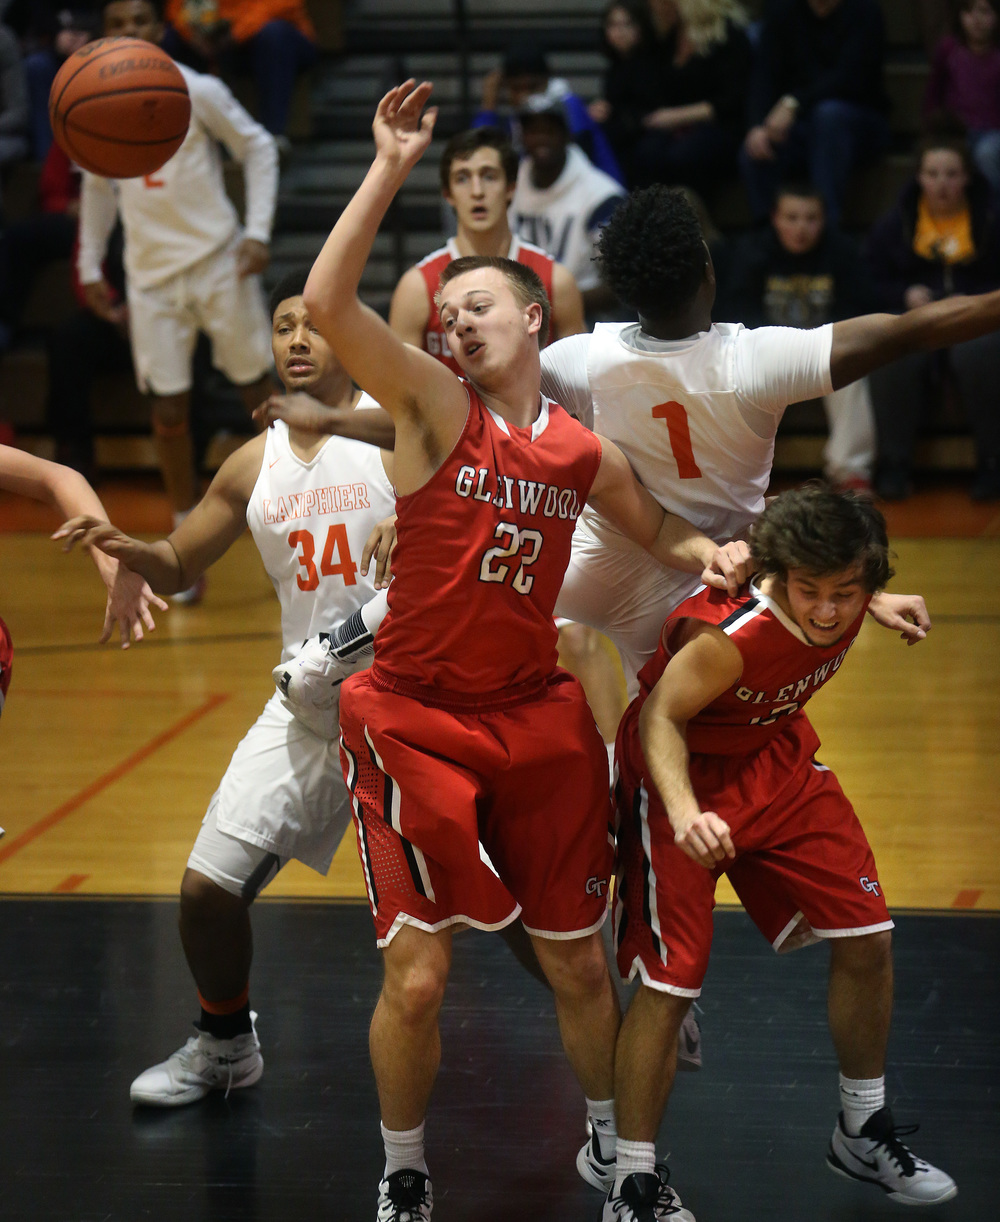 Glenwood's Parker Allen tries for a rebound under Lanphier's net during the first half. David Spencer/The State Journal Register